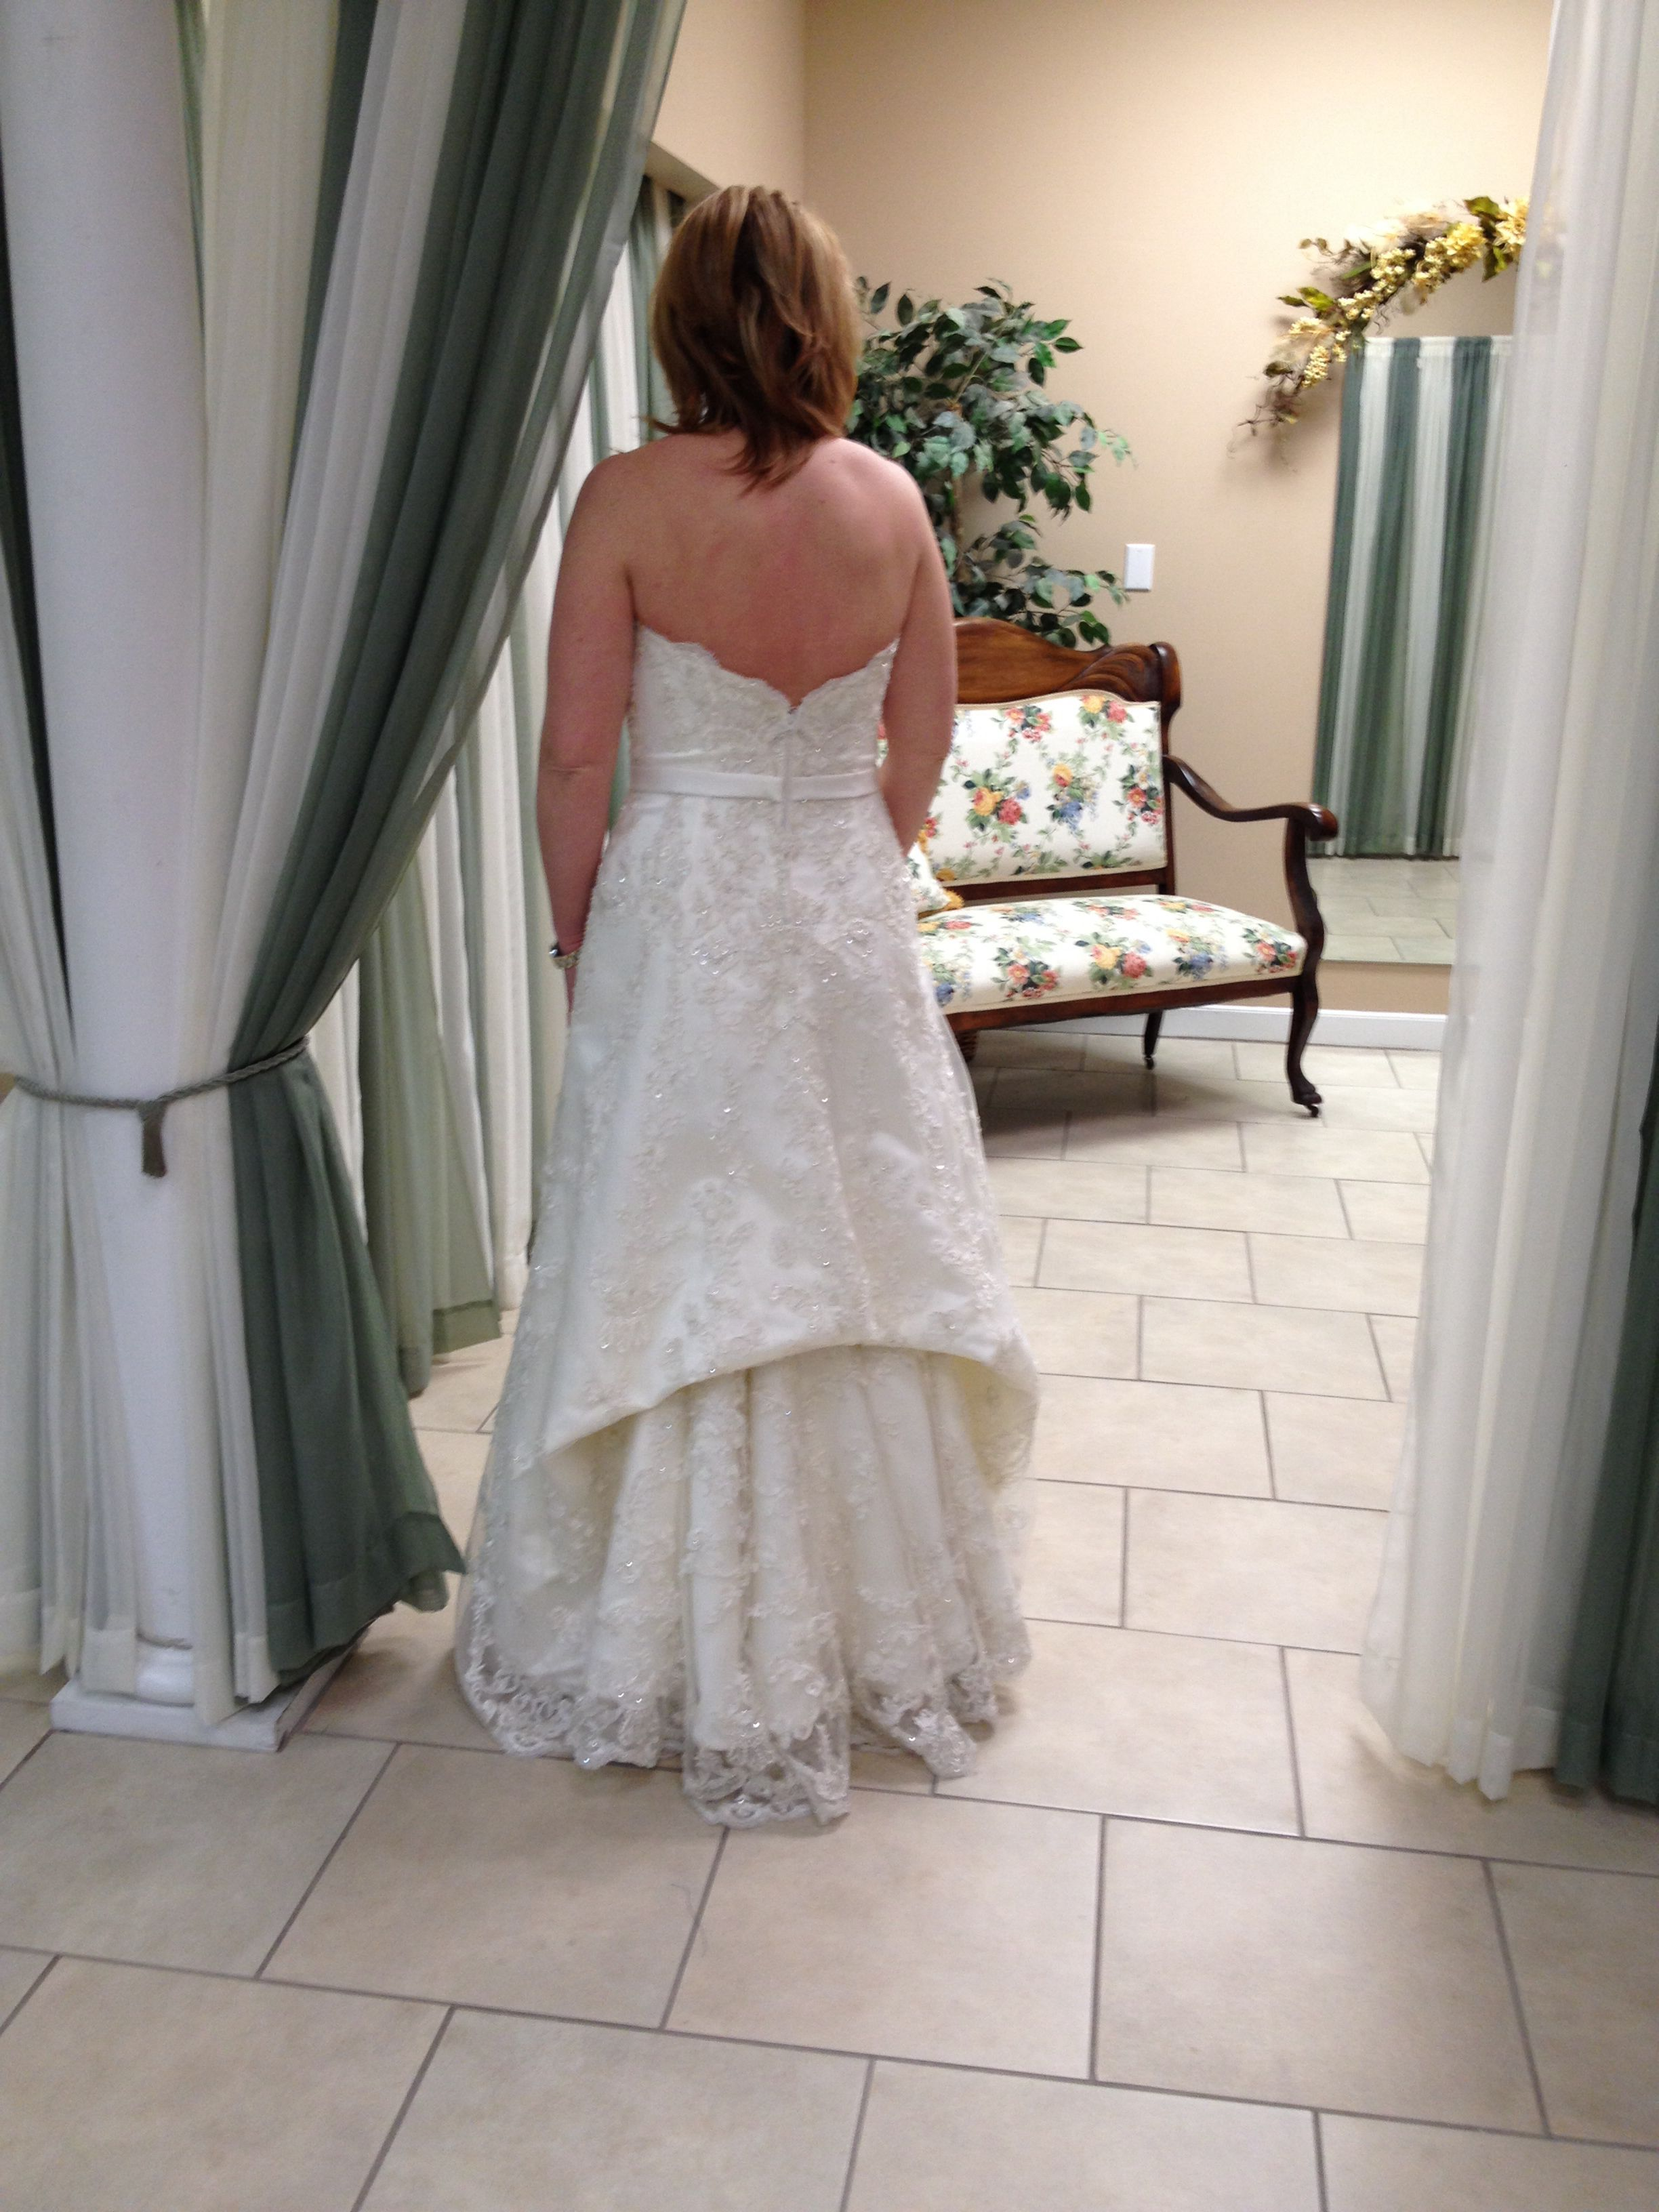 A traditional French Bustle to show off the lace scalloped